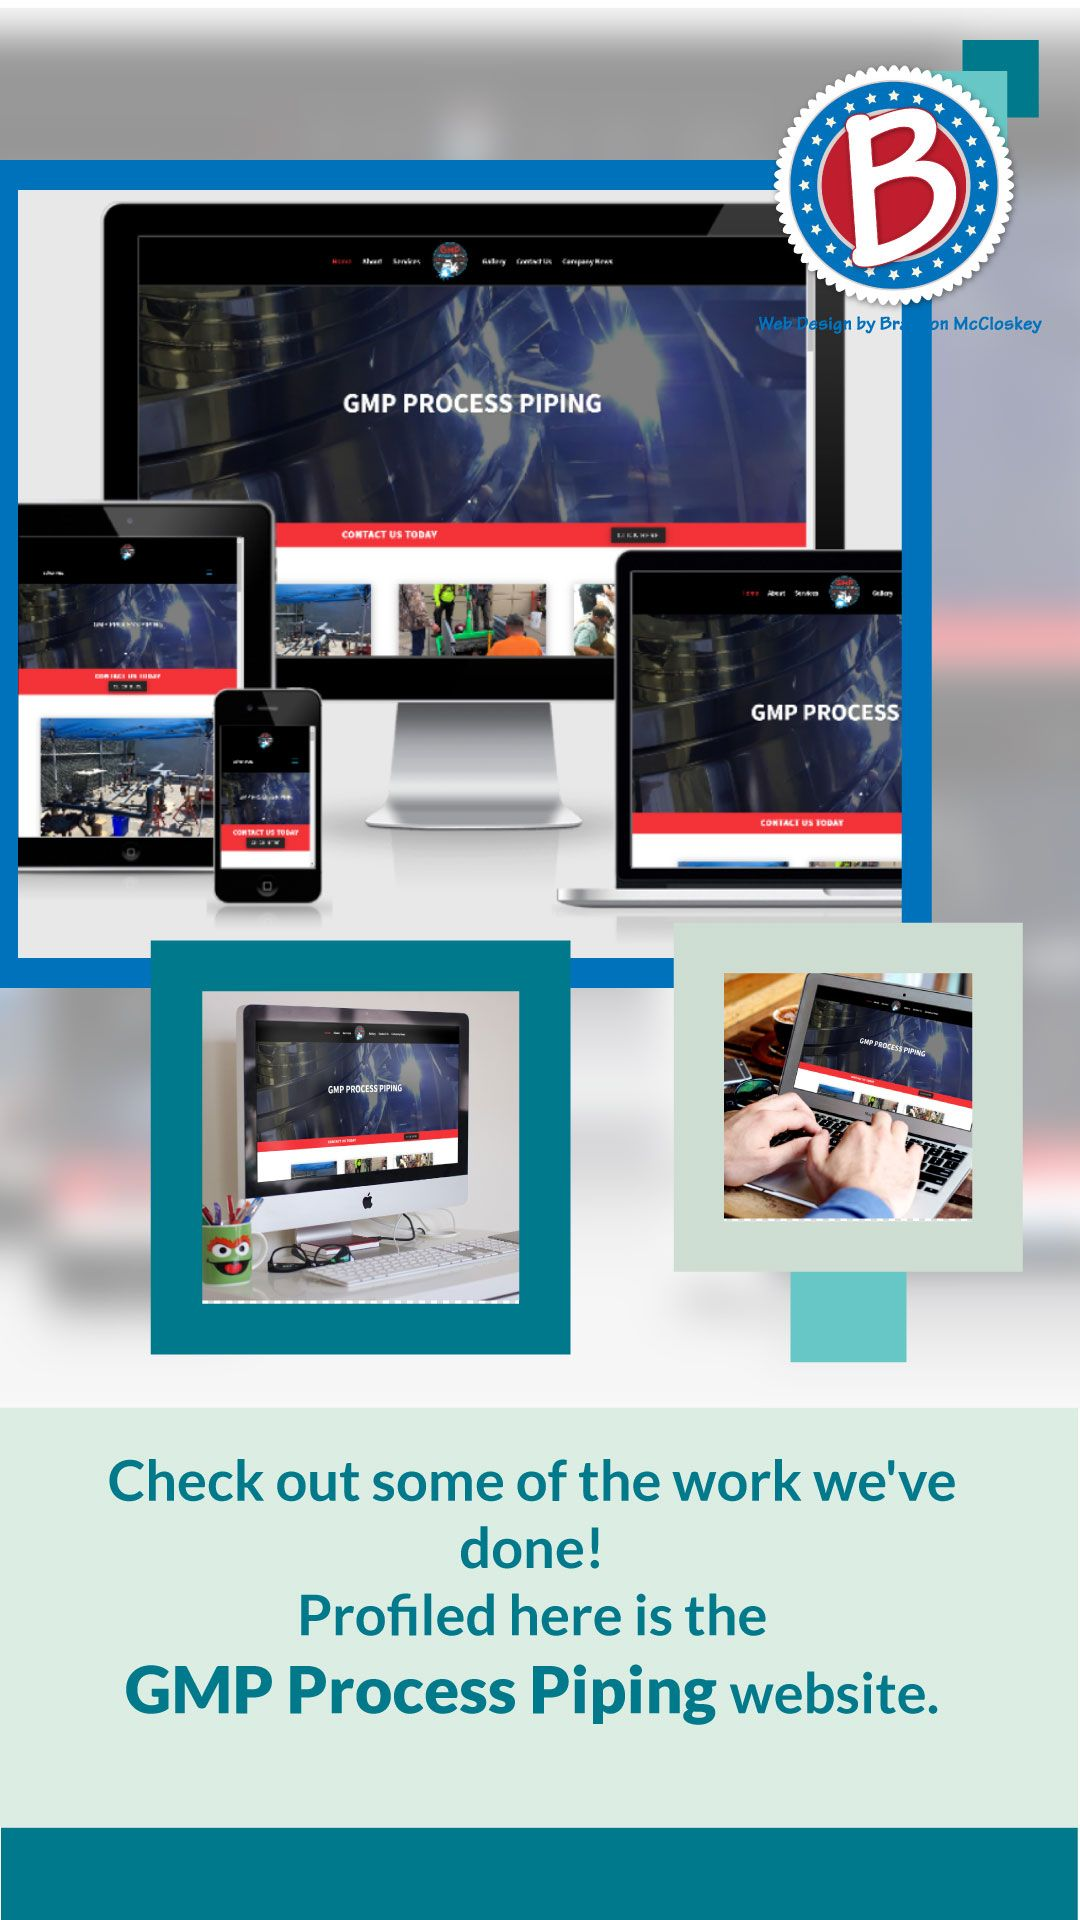 Check Out Some Of The Work We Ve Done Profiled Here Is The Gmp Process Piping Website Check It Out Here Website Profile Check It Out